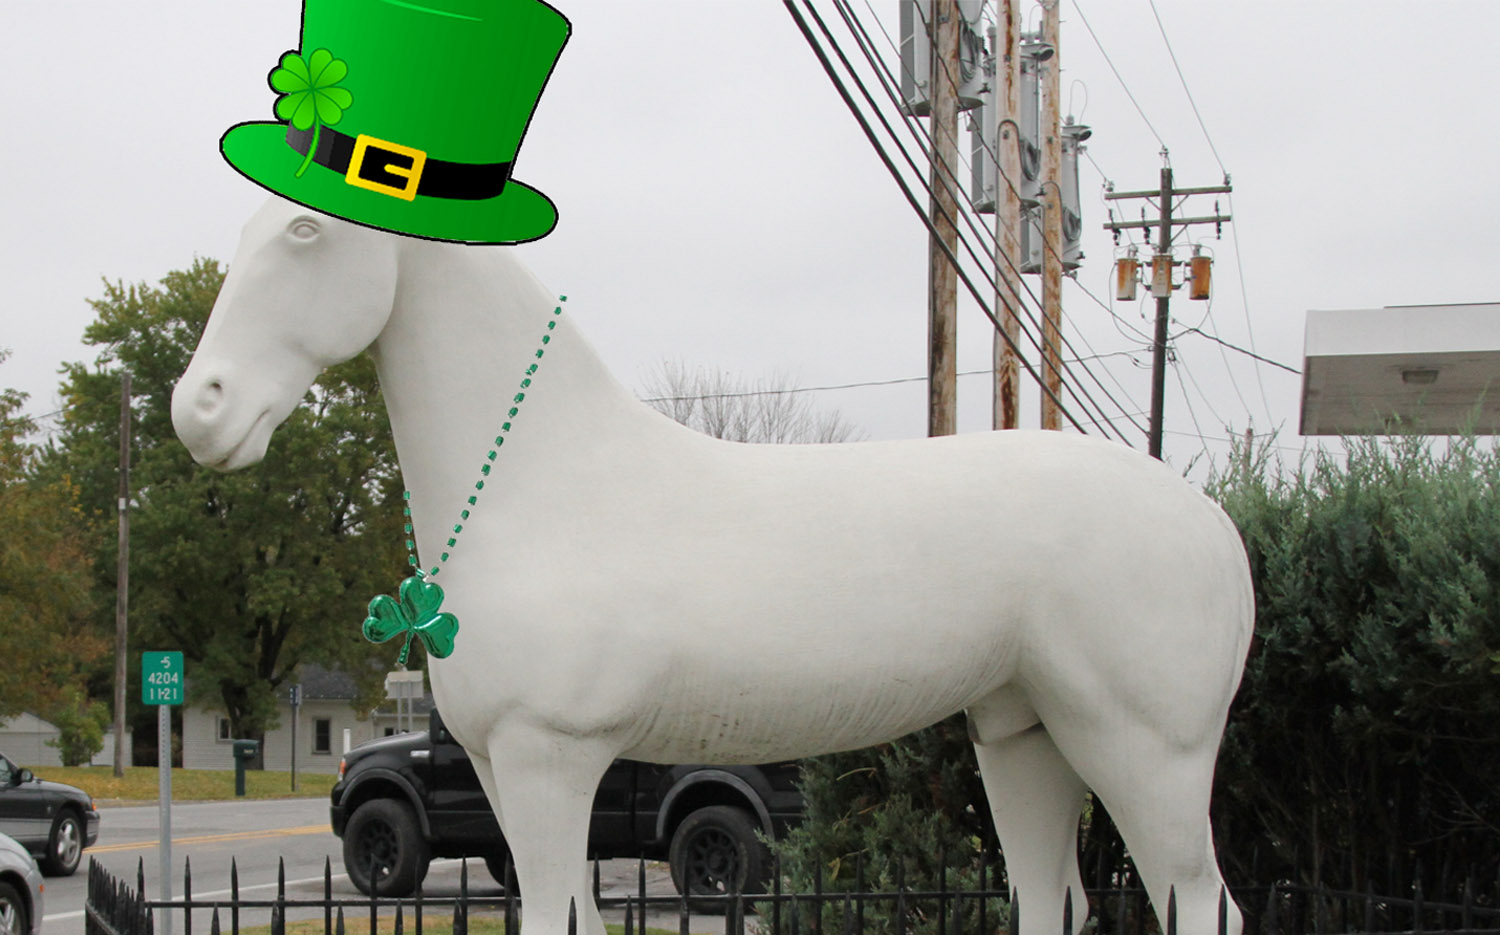 Second Annual St. Patrick's Day Parade Coming to Village of Avon